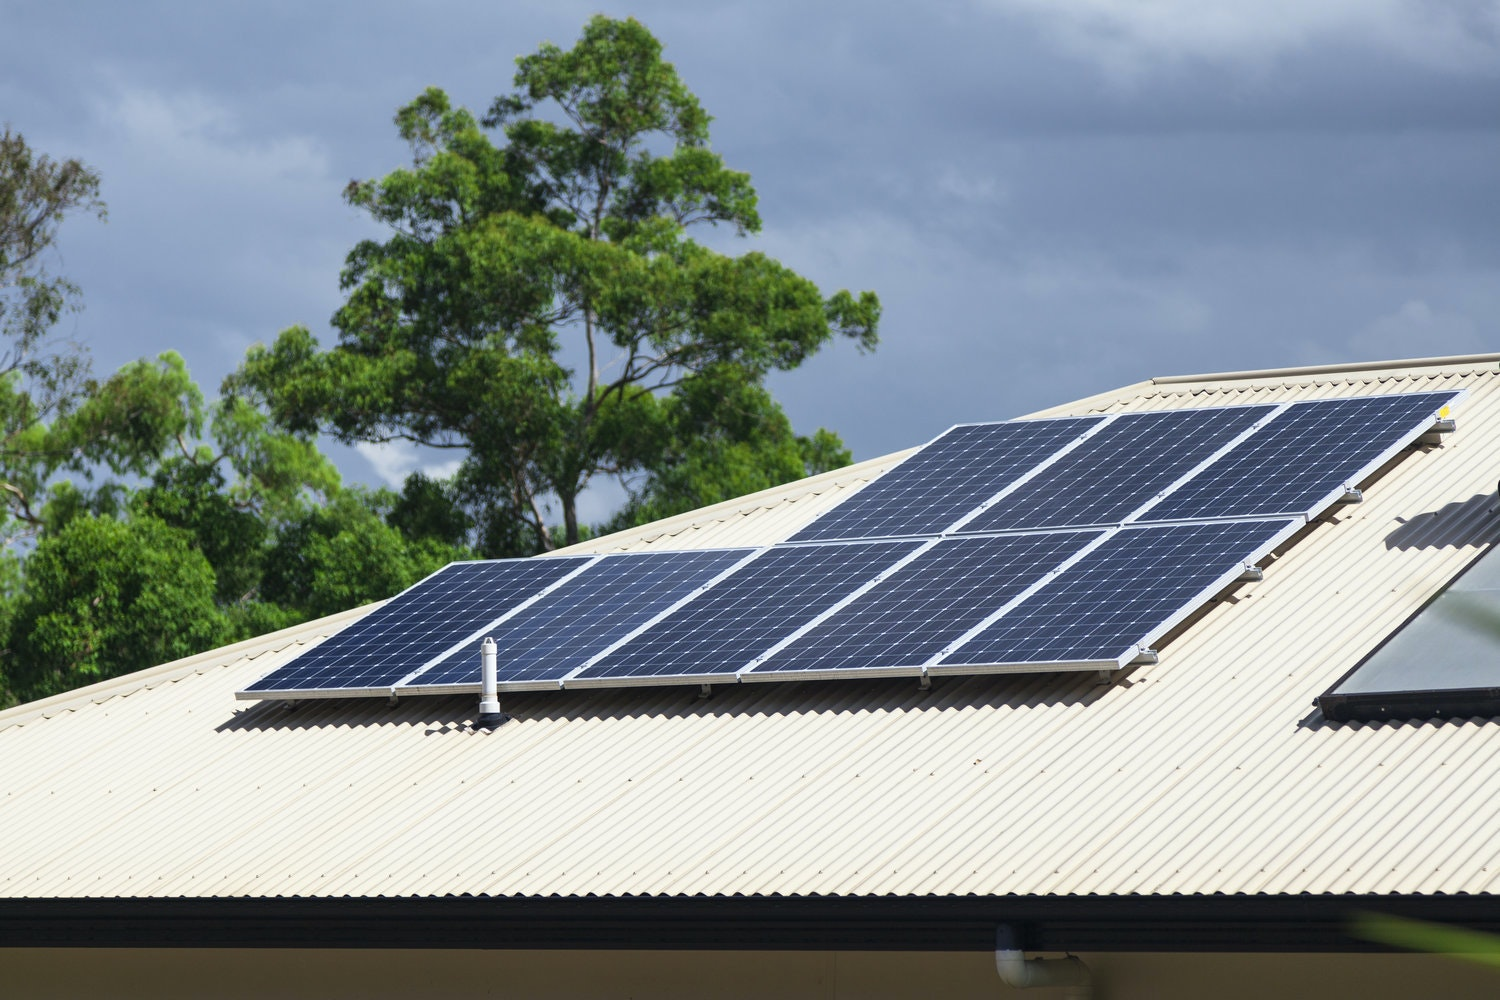 University Of Melbourne Sustainability Solar Panels